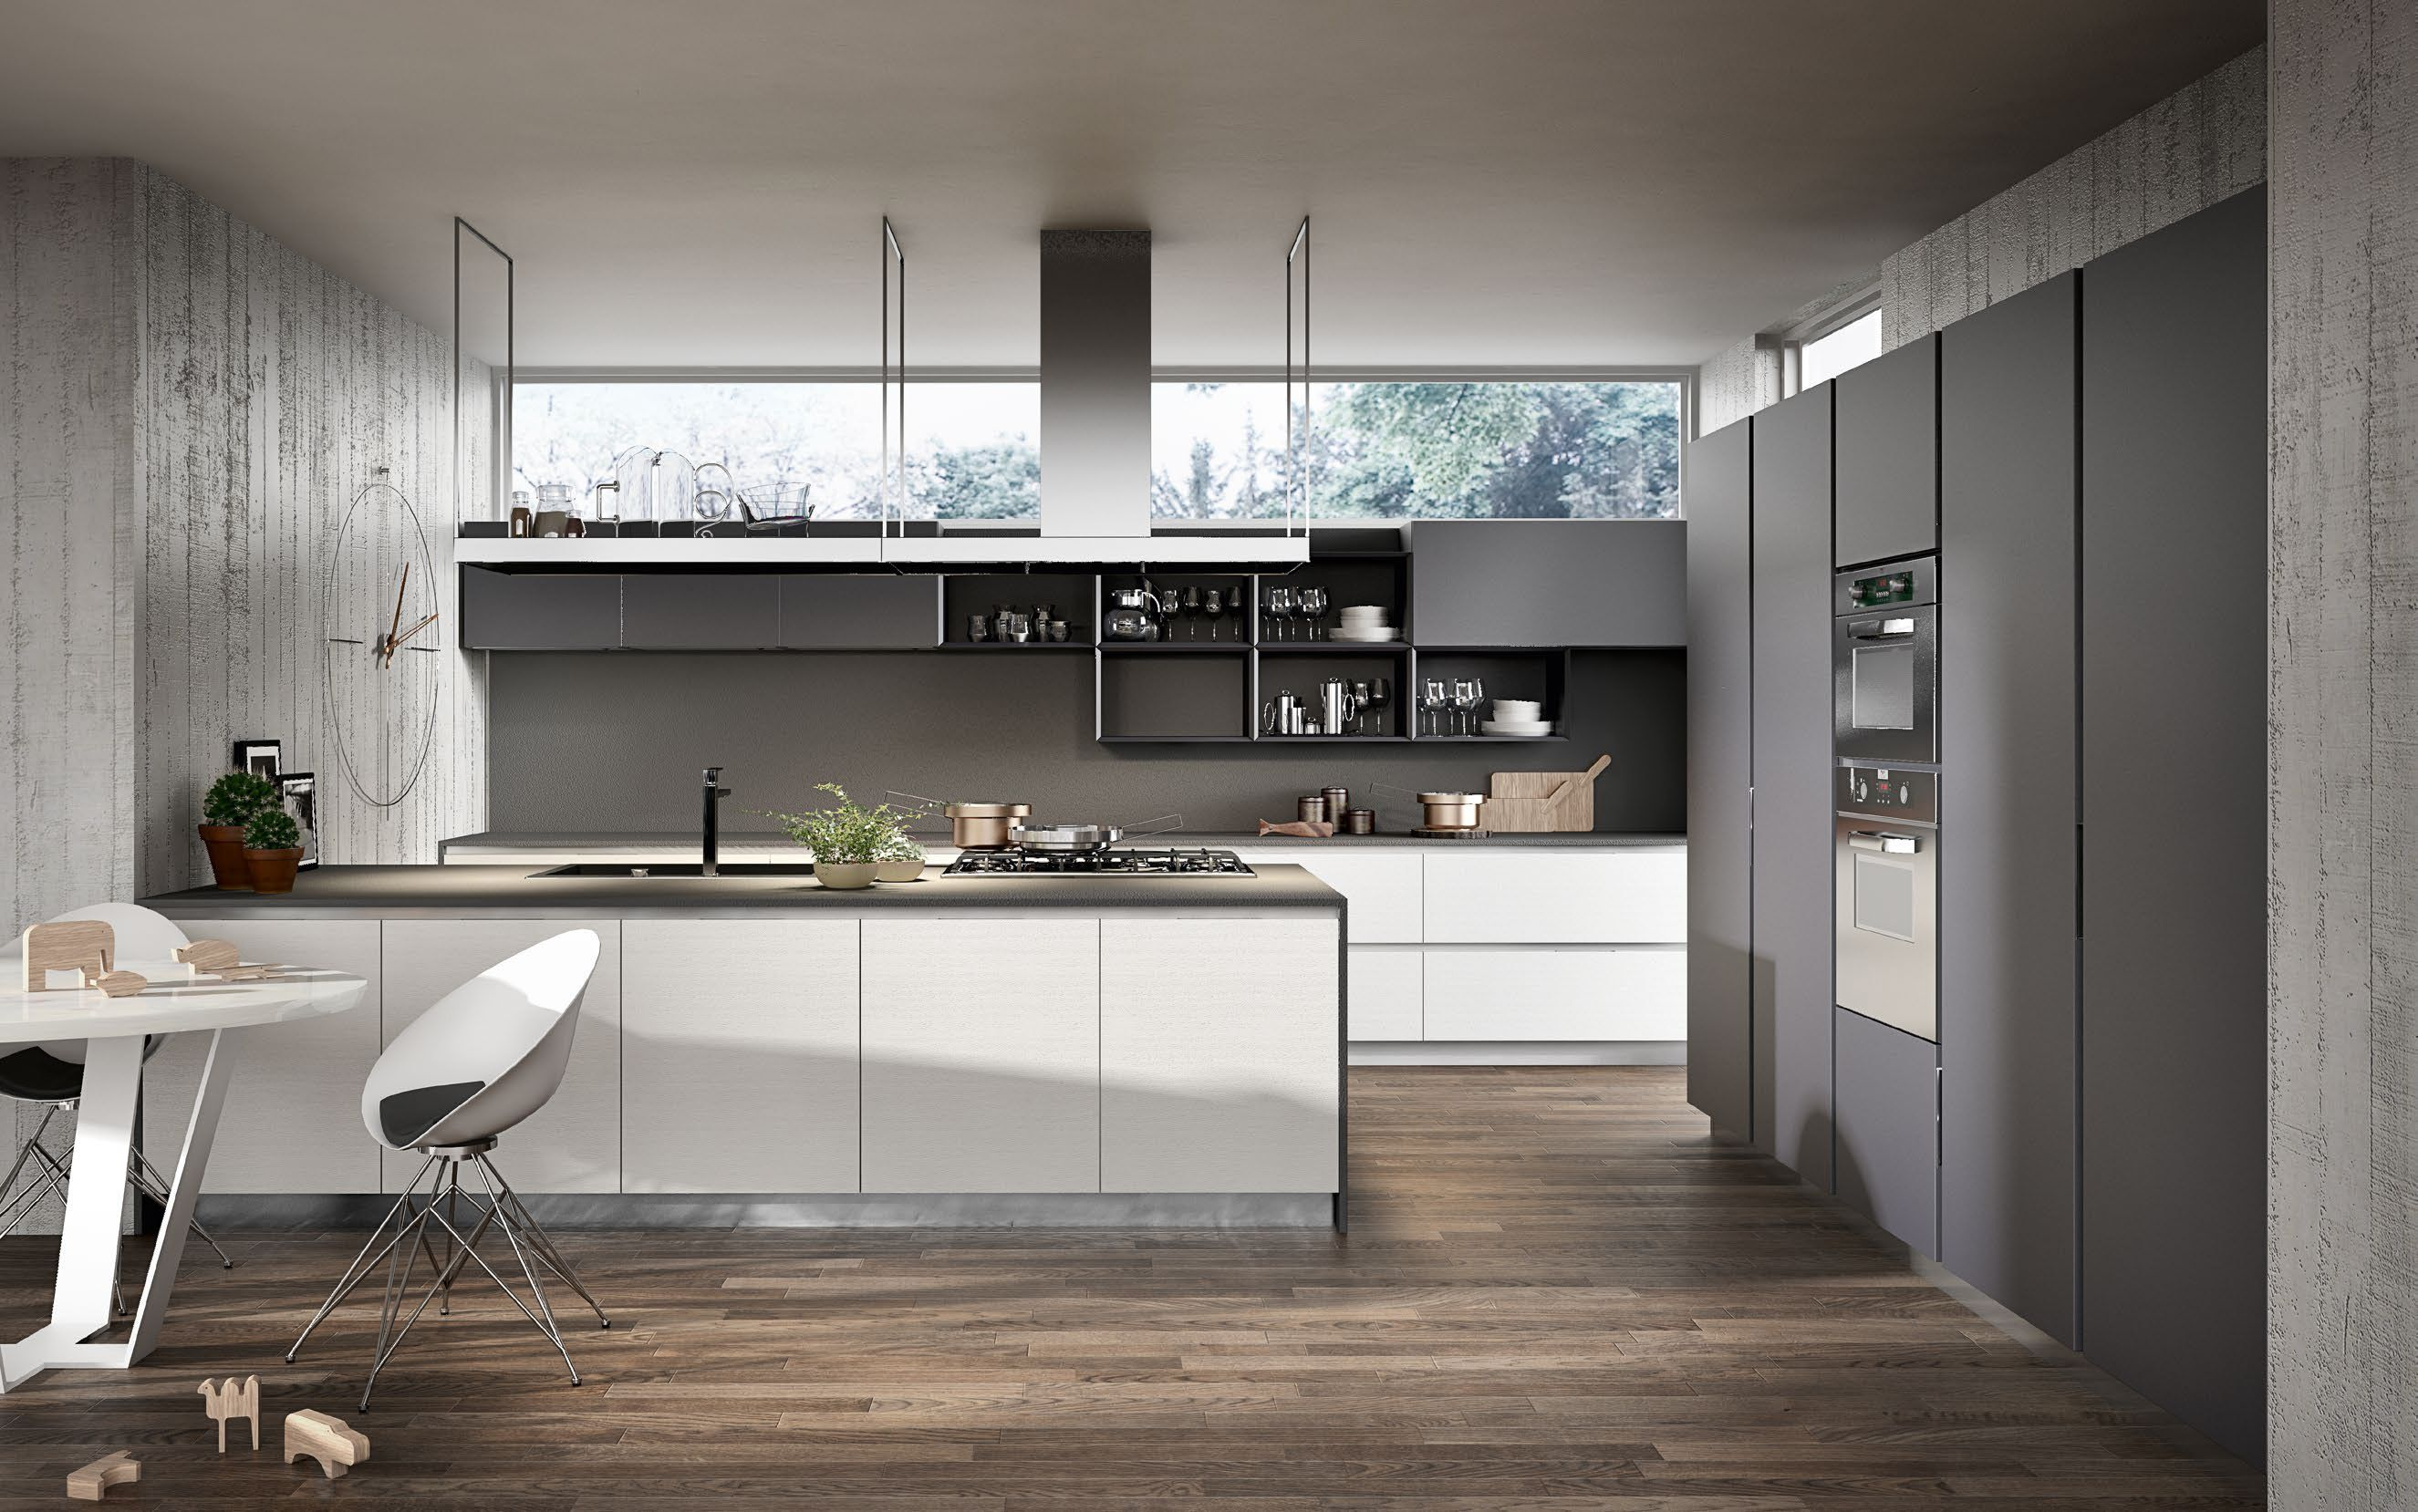 kitchen design with large grey cabinets and white peninsula with id kitchen room design grey on kitchen decor grey cabinets id=49793